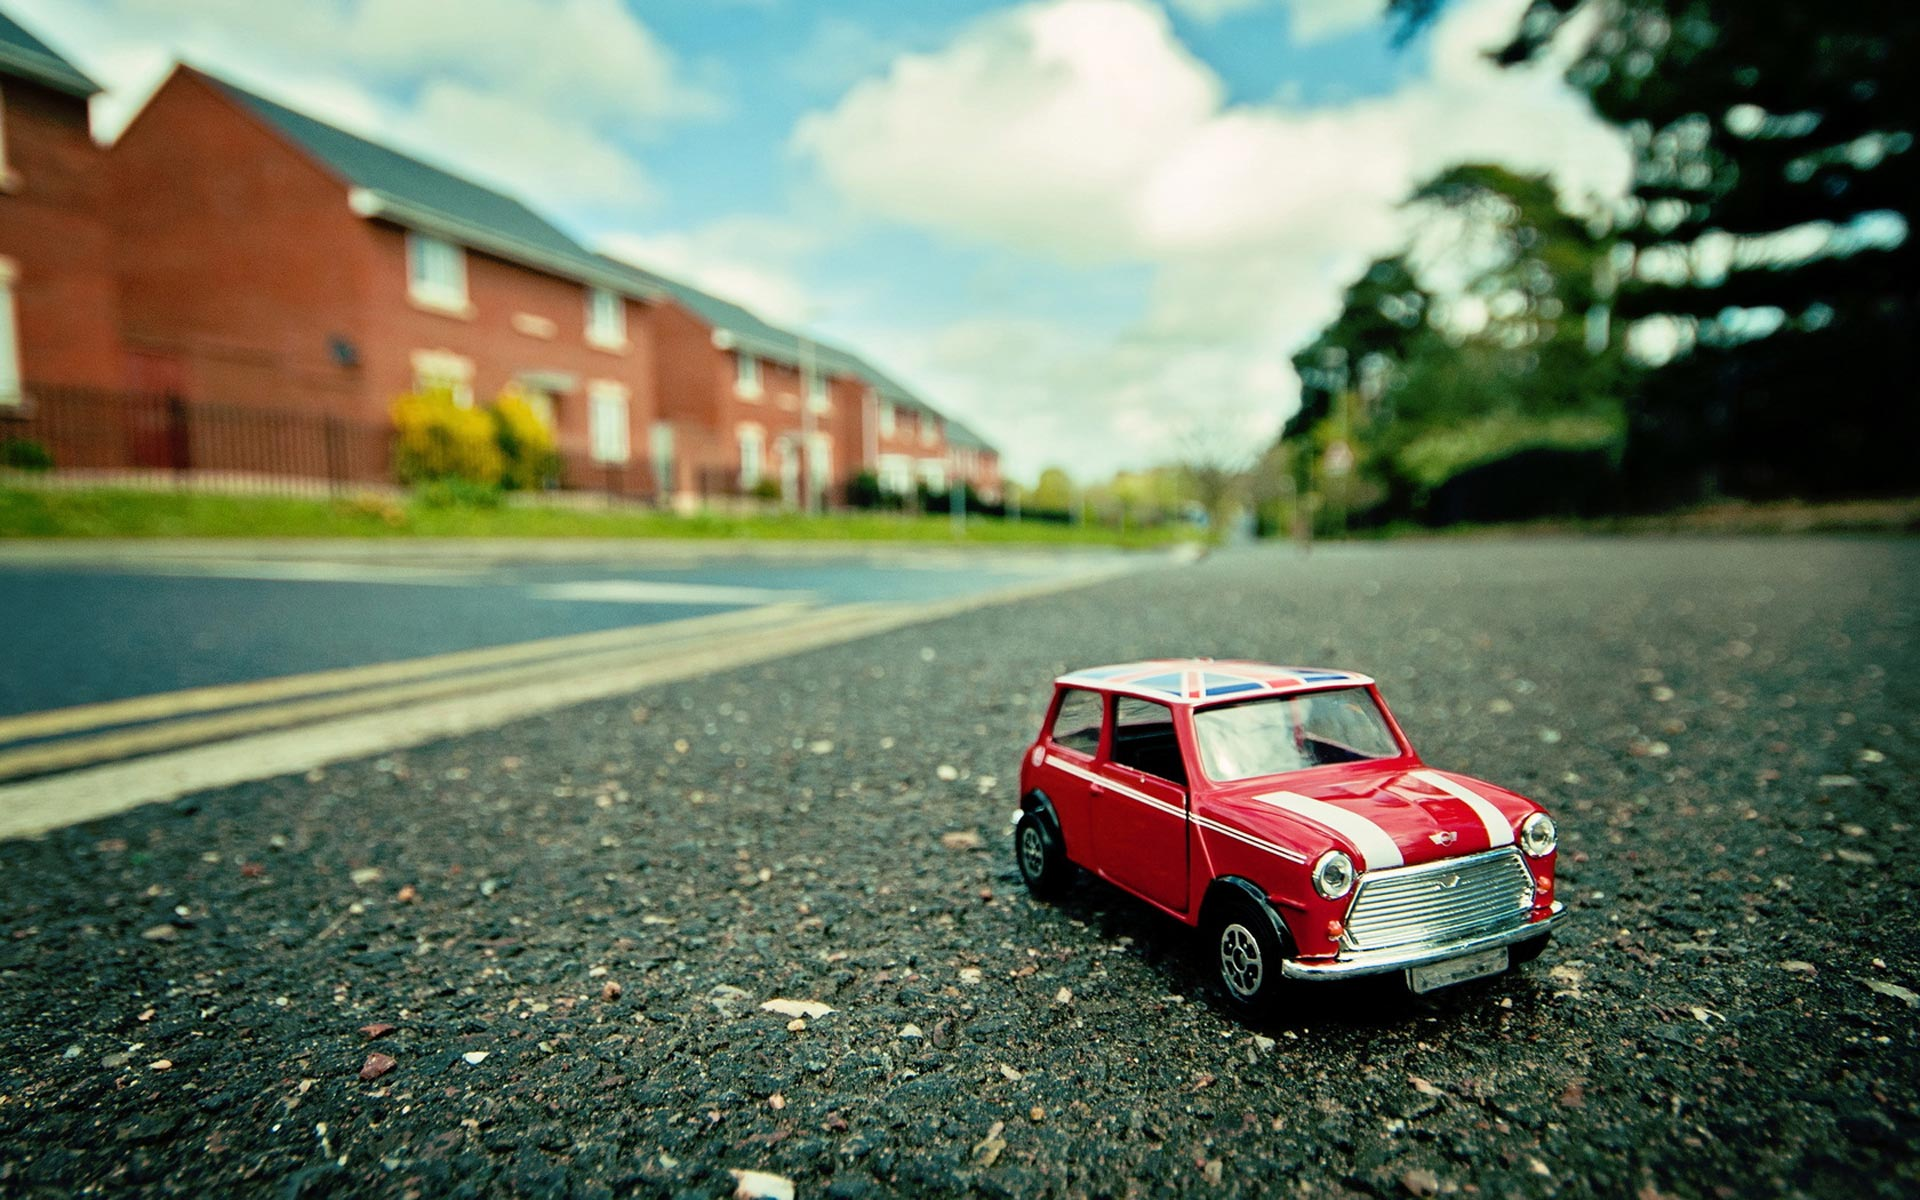 Cool Toy Car Wallpaper